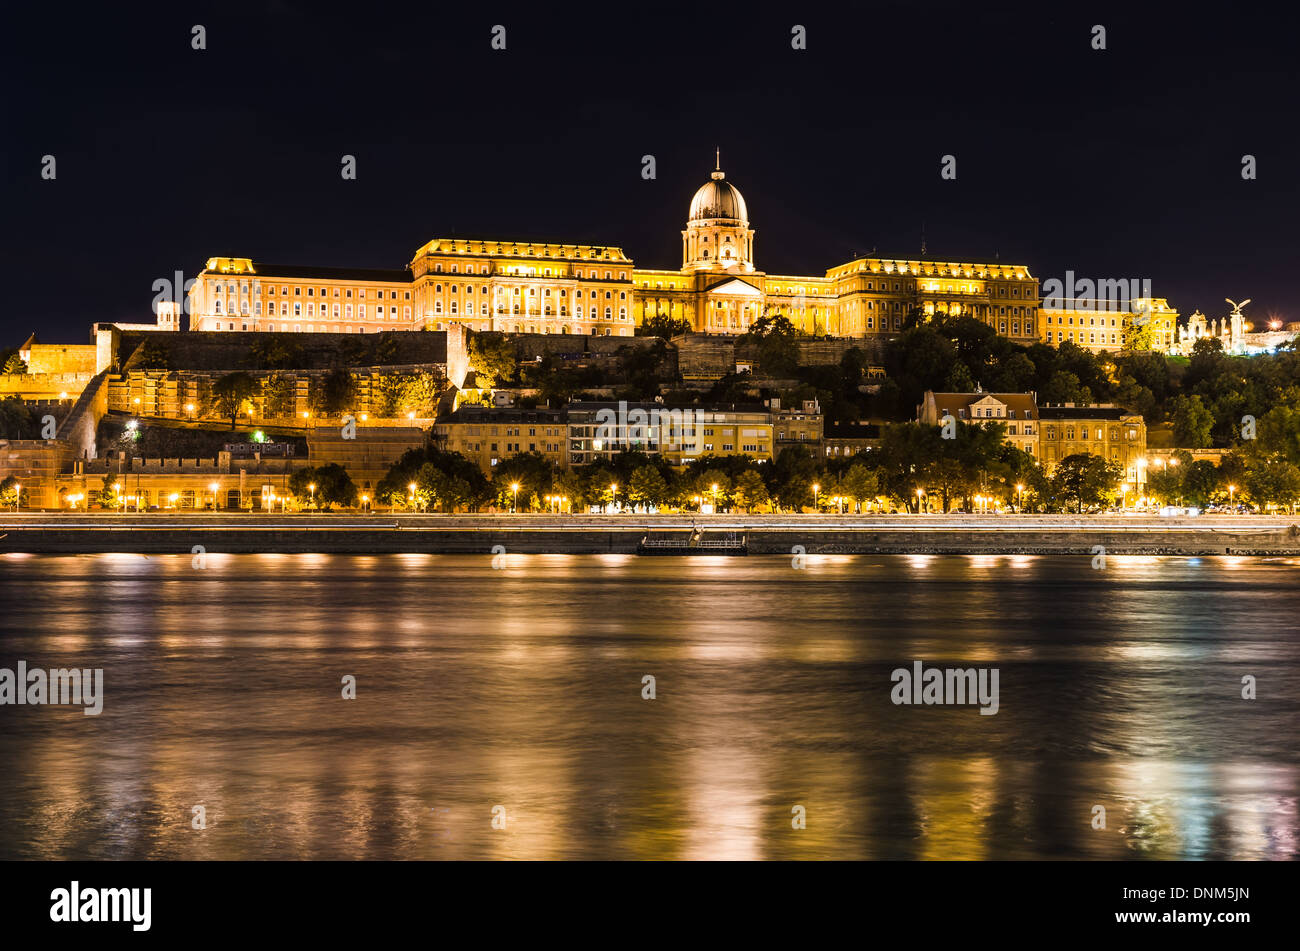 Budapest, Hungary. Night view of Buda Castle from Danube River. - Stock Image